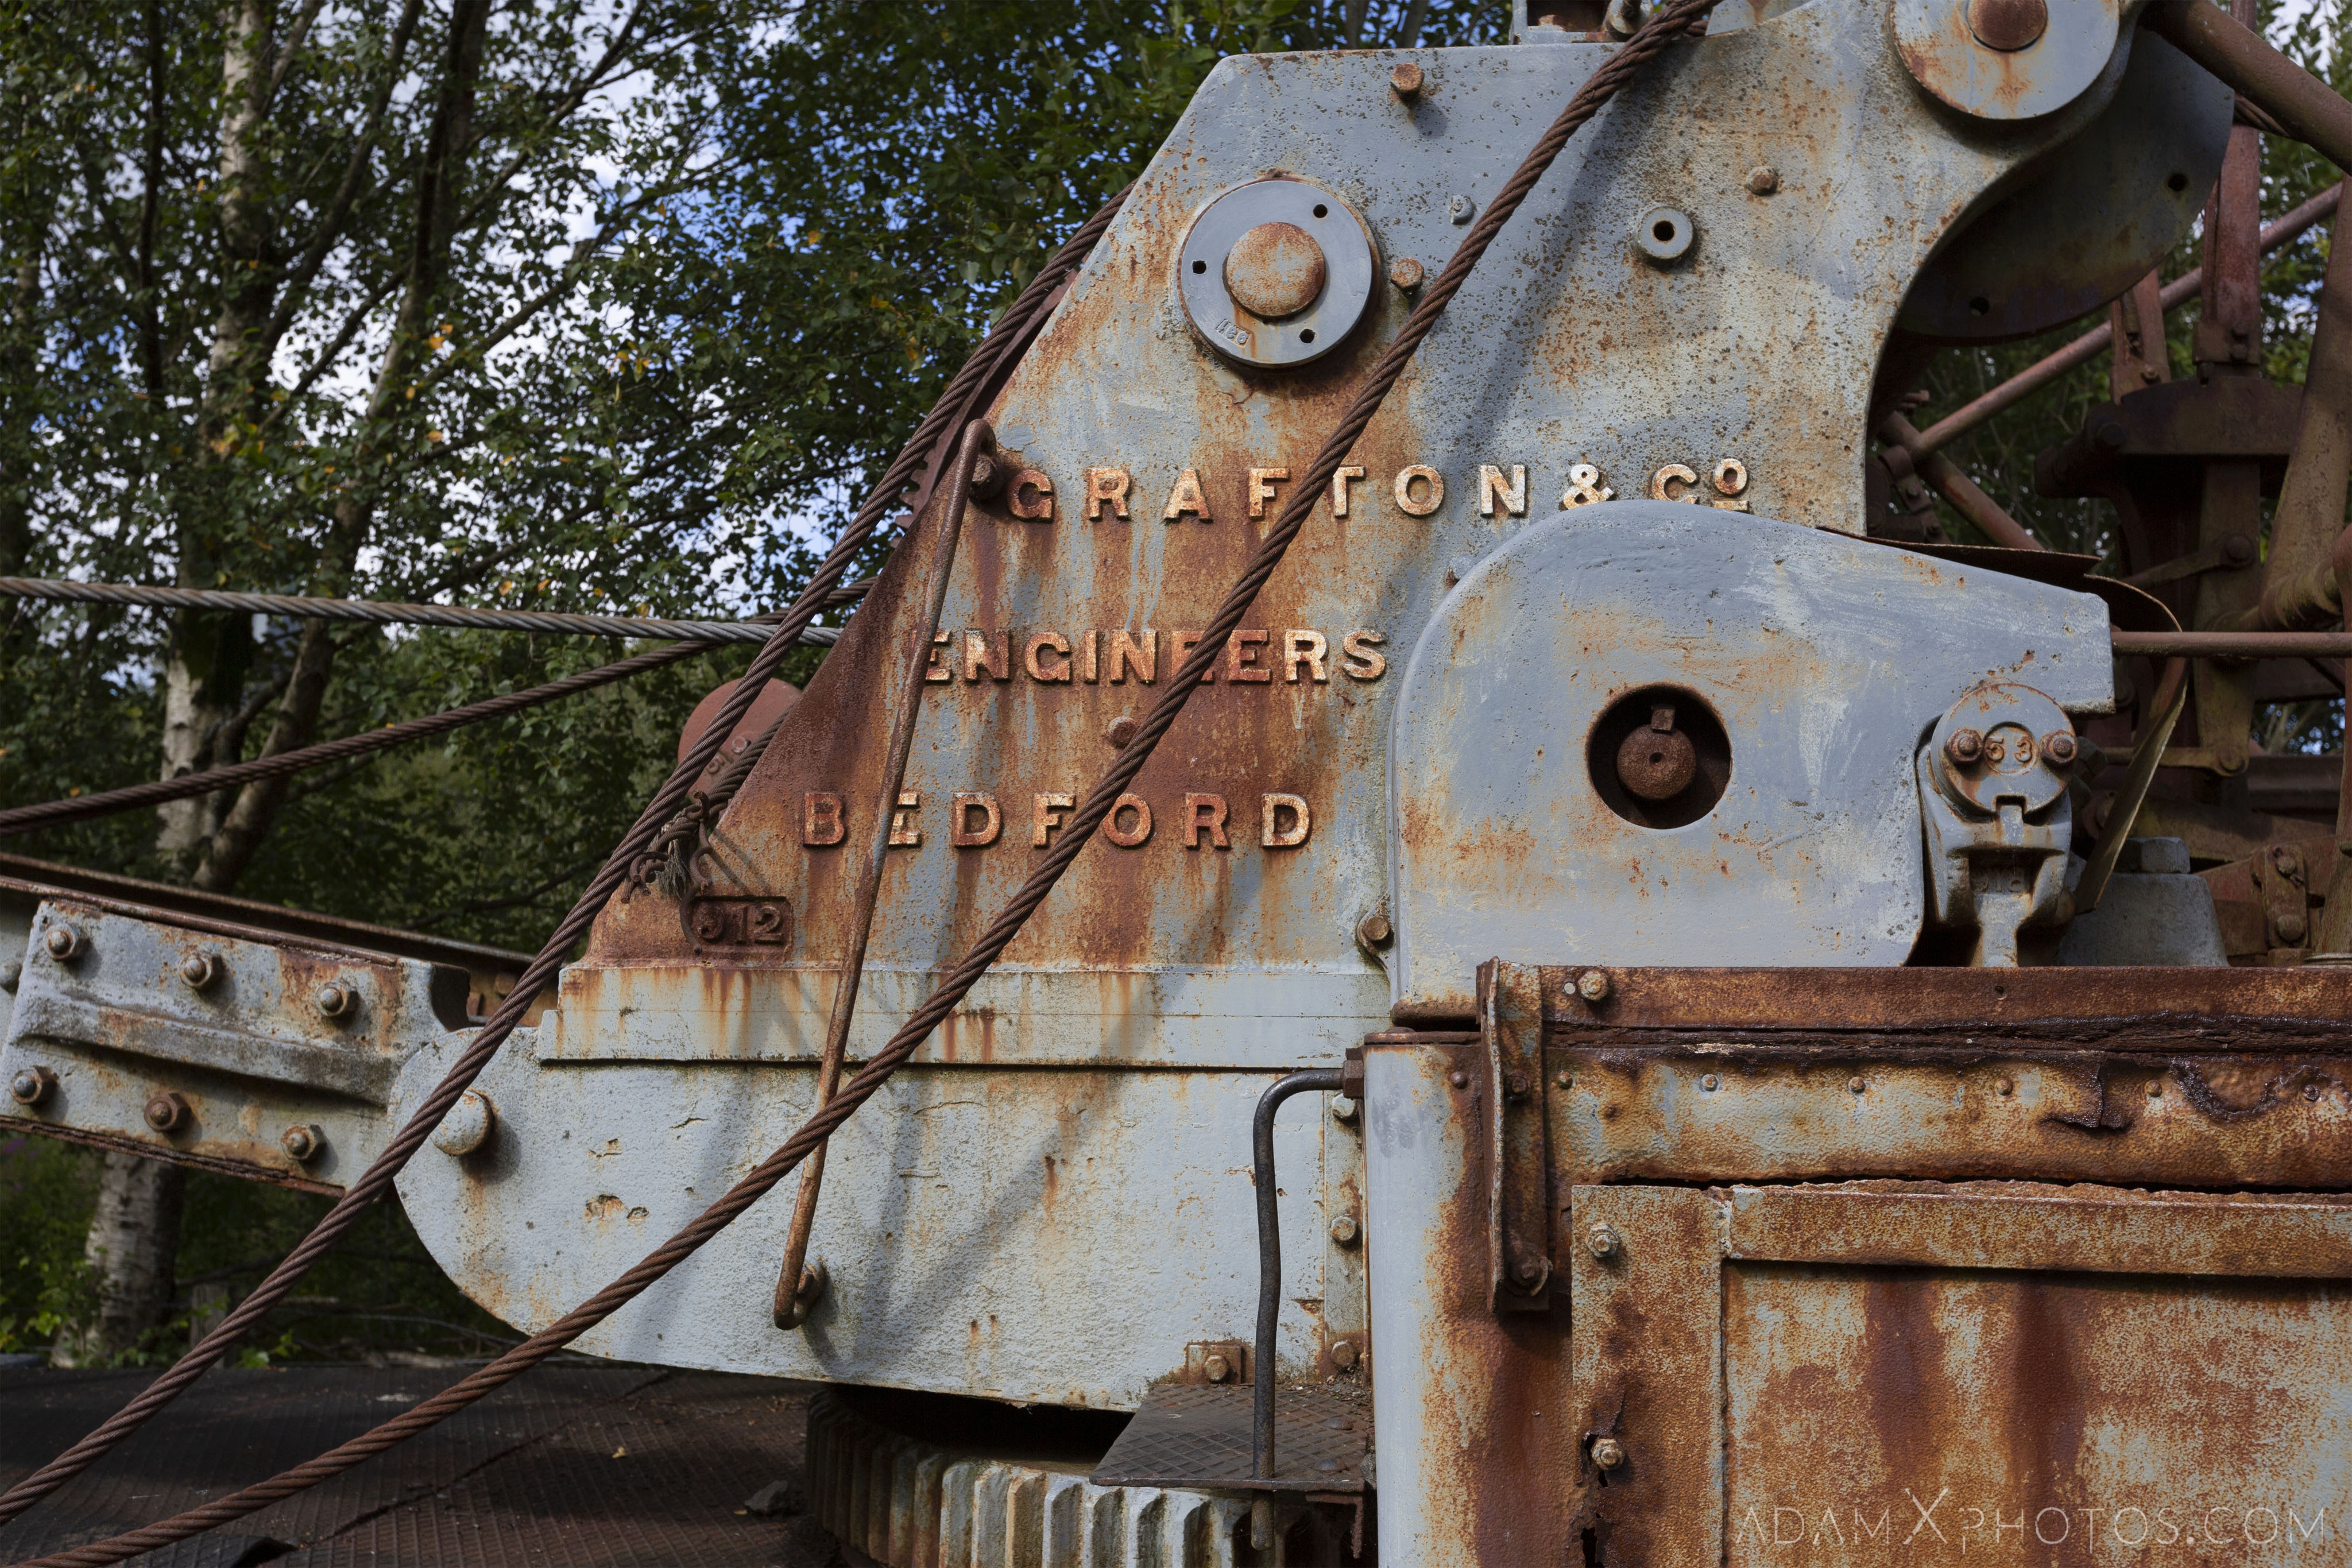 Grafton & Co engineers bedford Abandoned Trains Waterside Dunaskin Adam X Urbex Urban Exploration Access 2018 Abandoned decay lost forgotten derelict location creepy haunting eerie